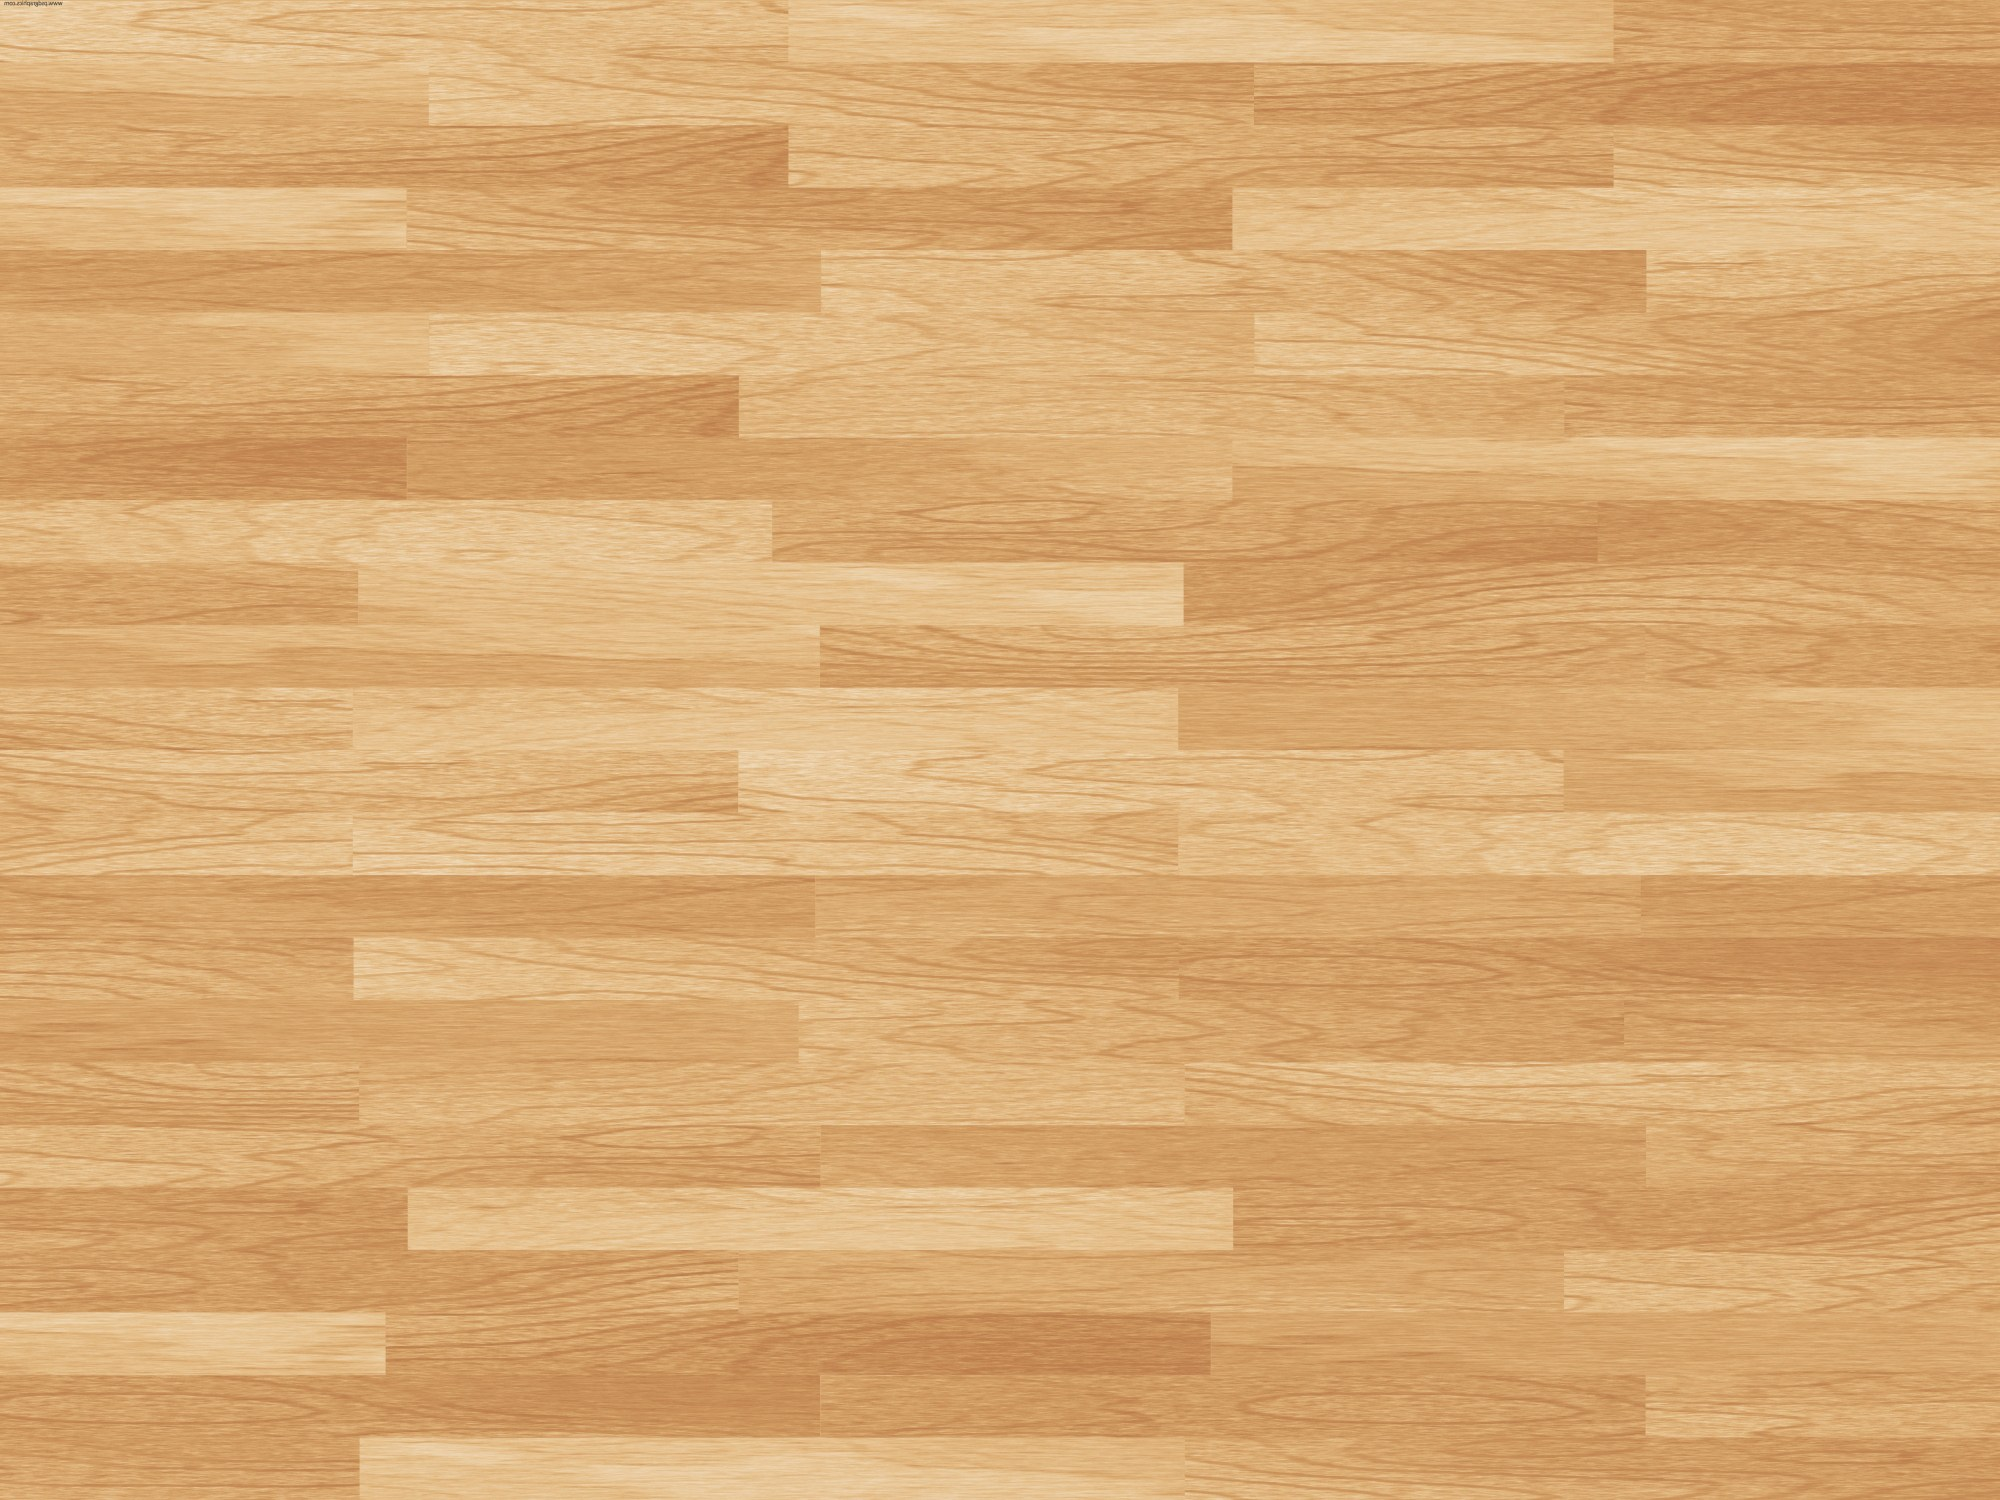 hight resolution of 6000x4500 wood grain texture vector black and orangiausa